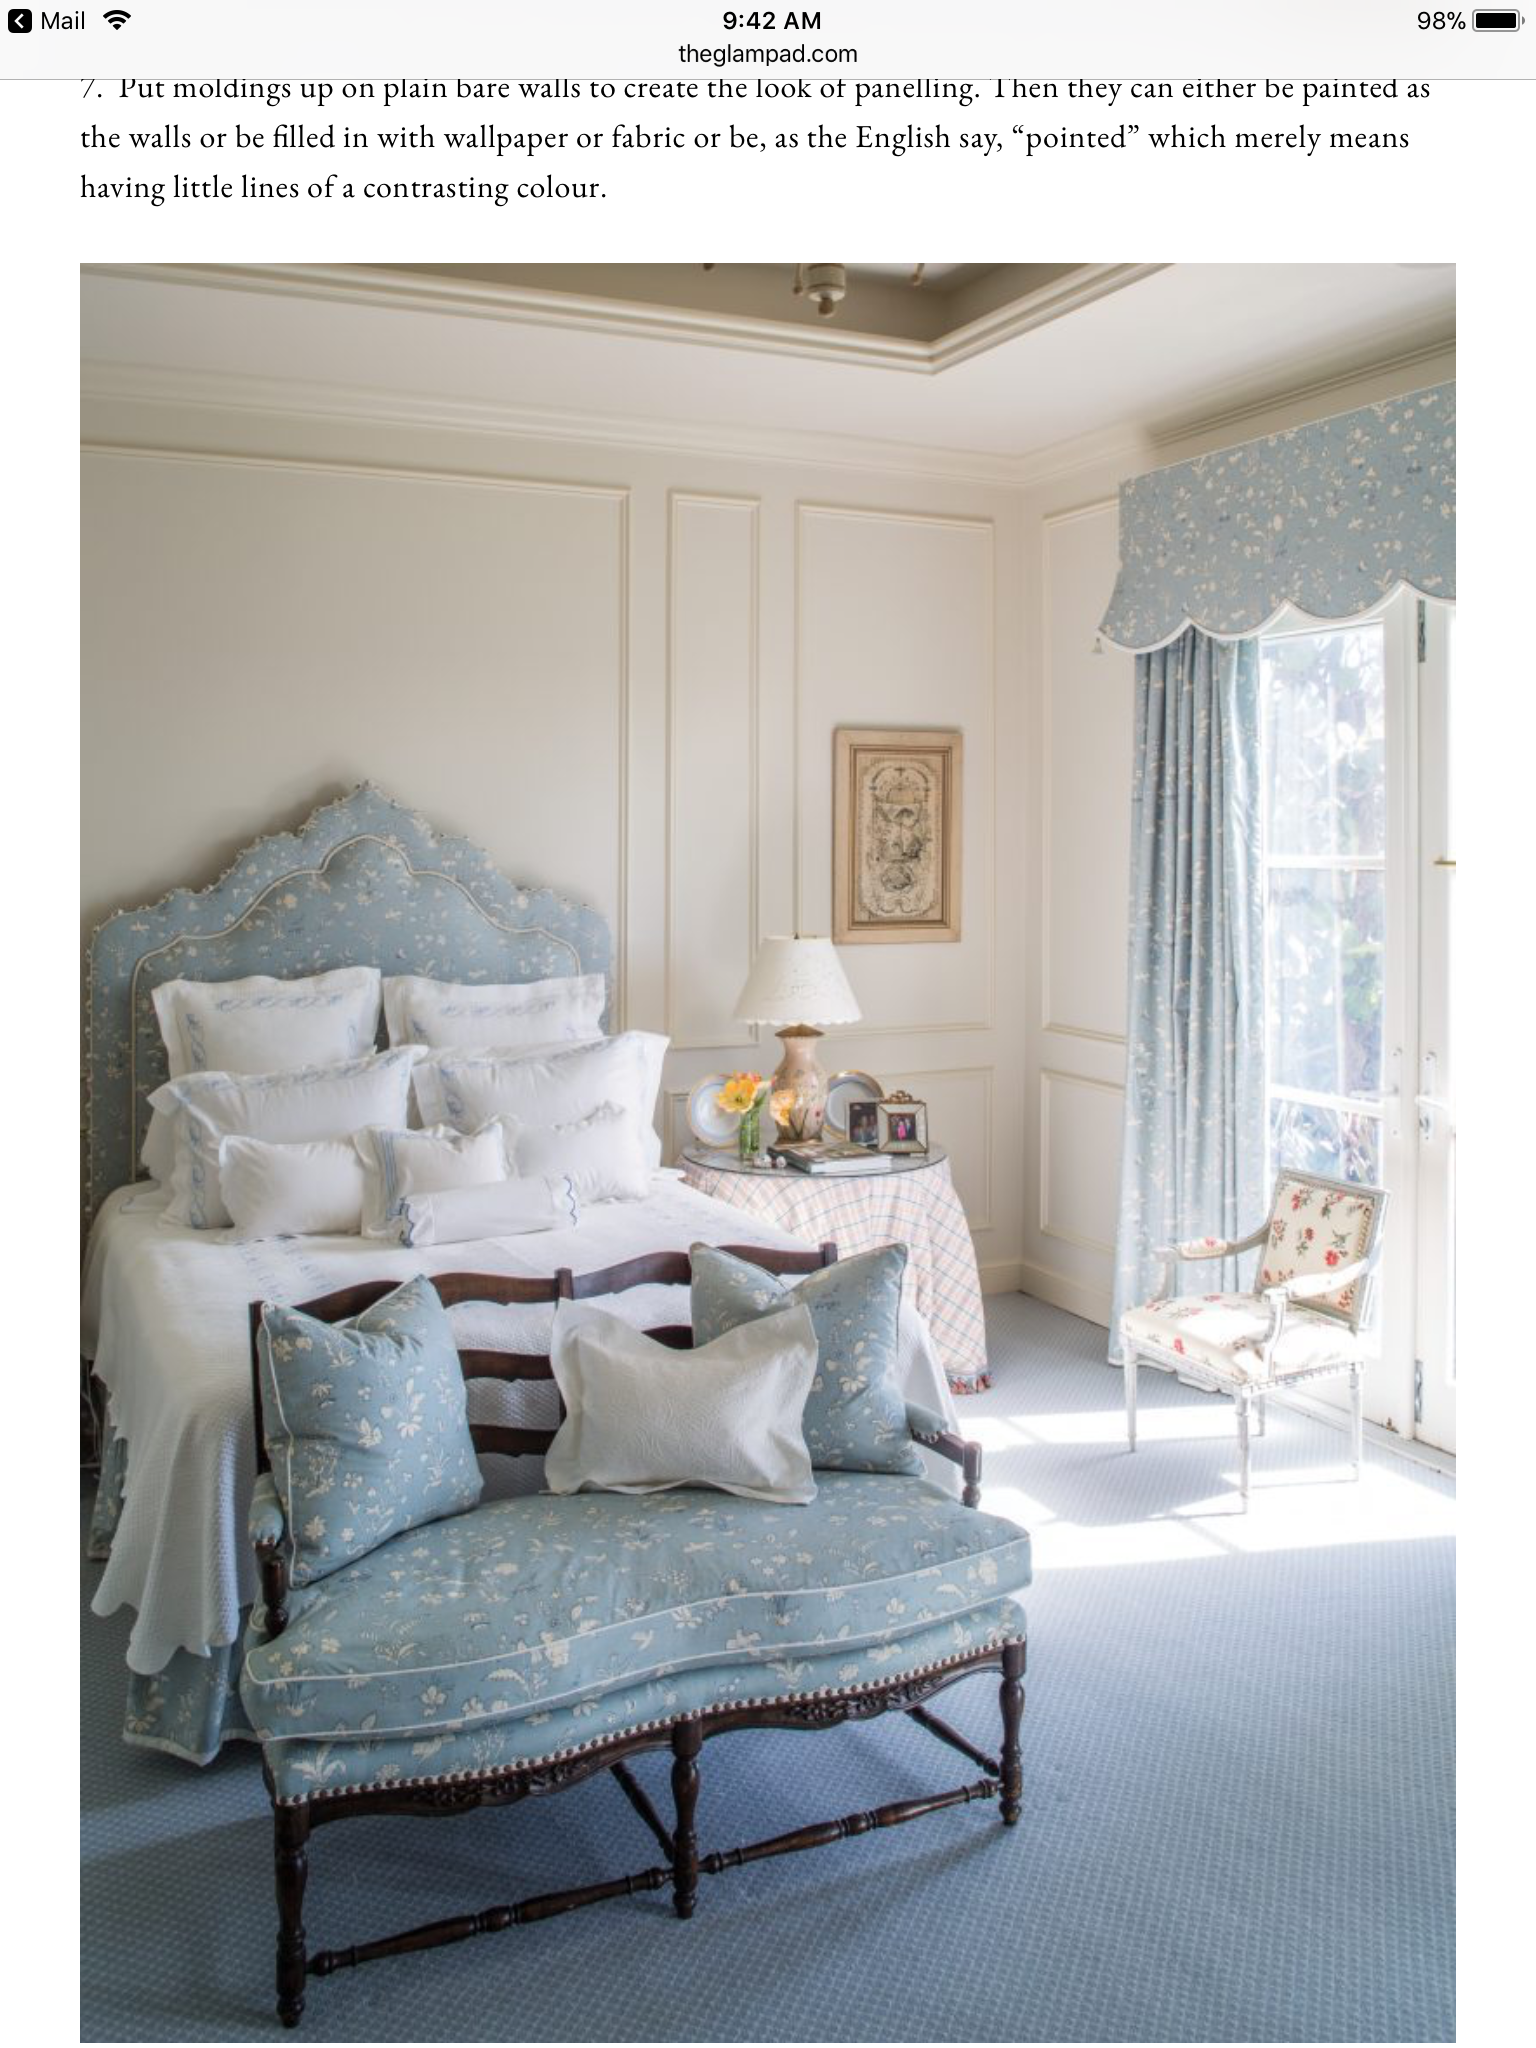 Blue Bedroom Furniture: Pin By Stacey Kruchko On Bedrooms In 2019